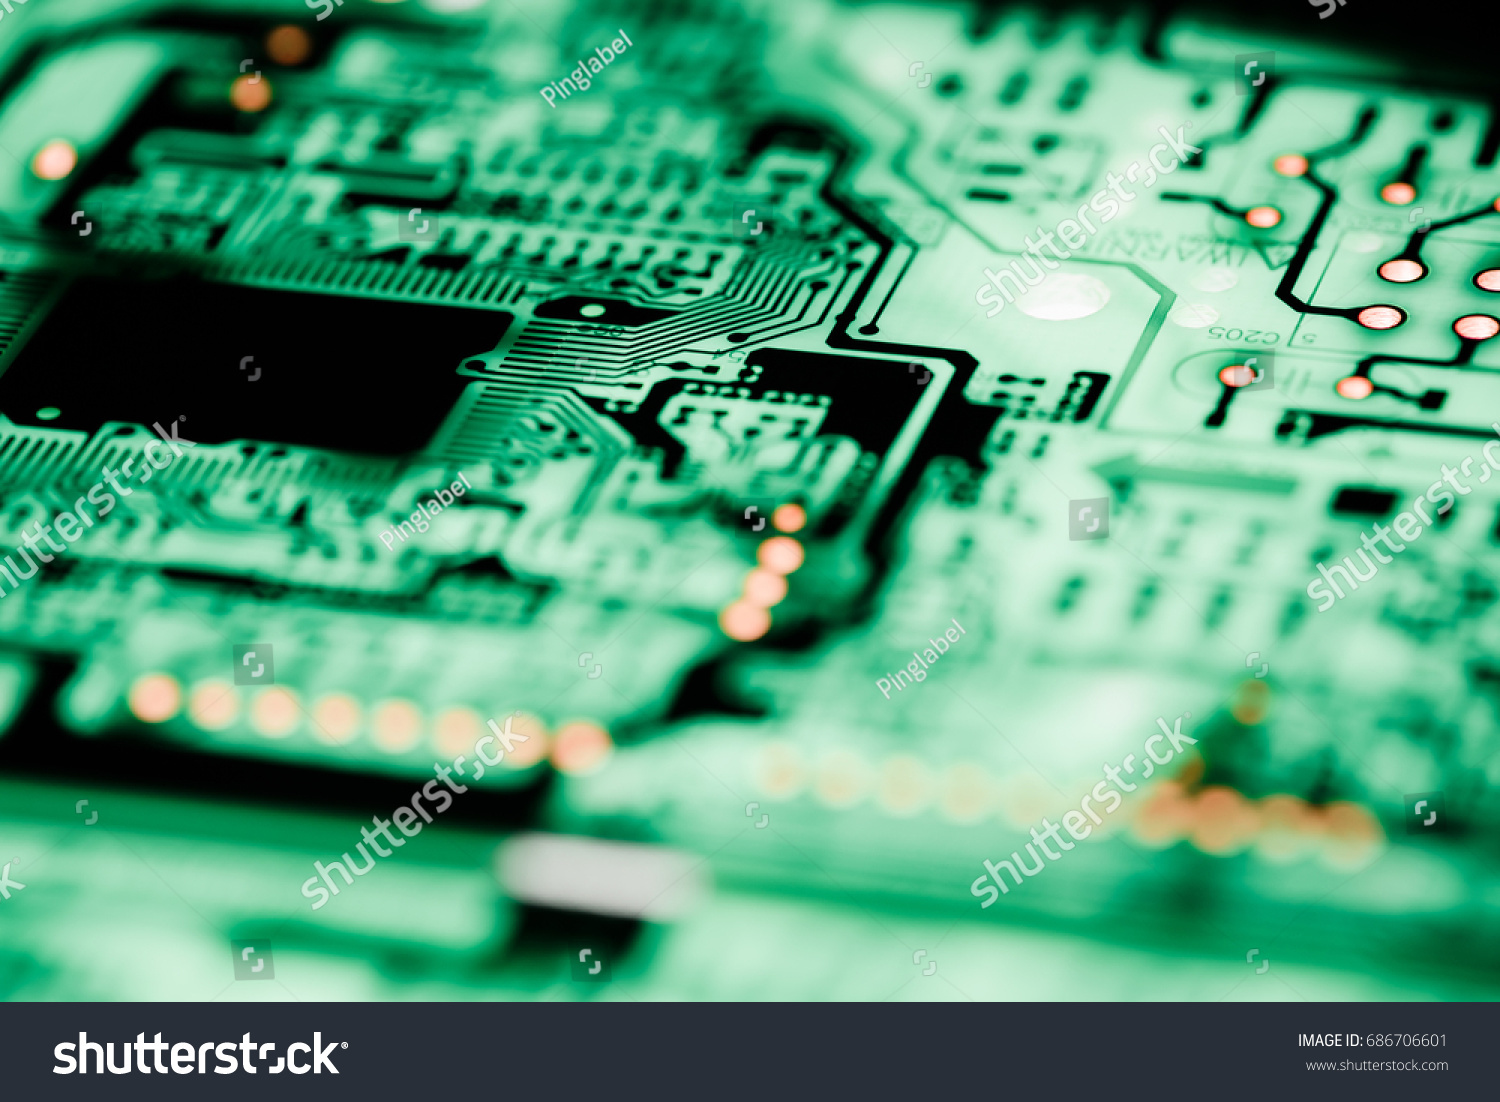 Abstract Close Up Of Circuits Electronic On Mainboard Technology Circuit Board Background Id 686706601